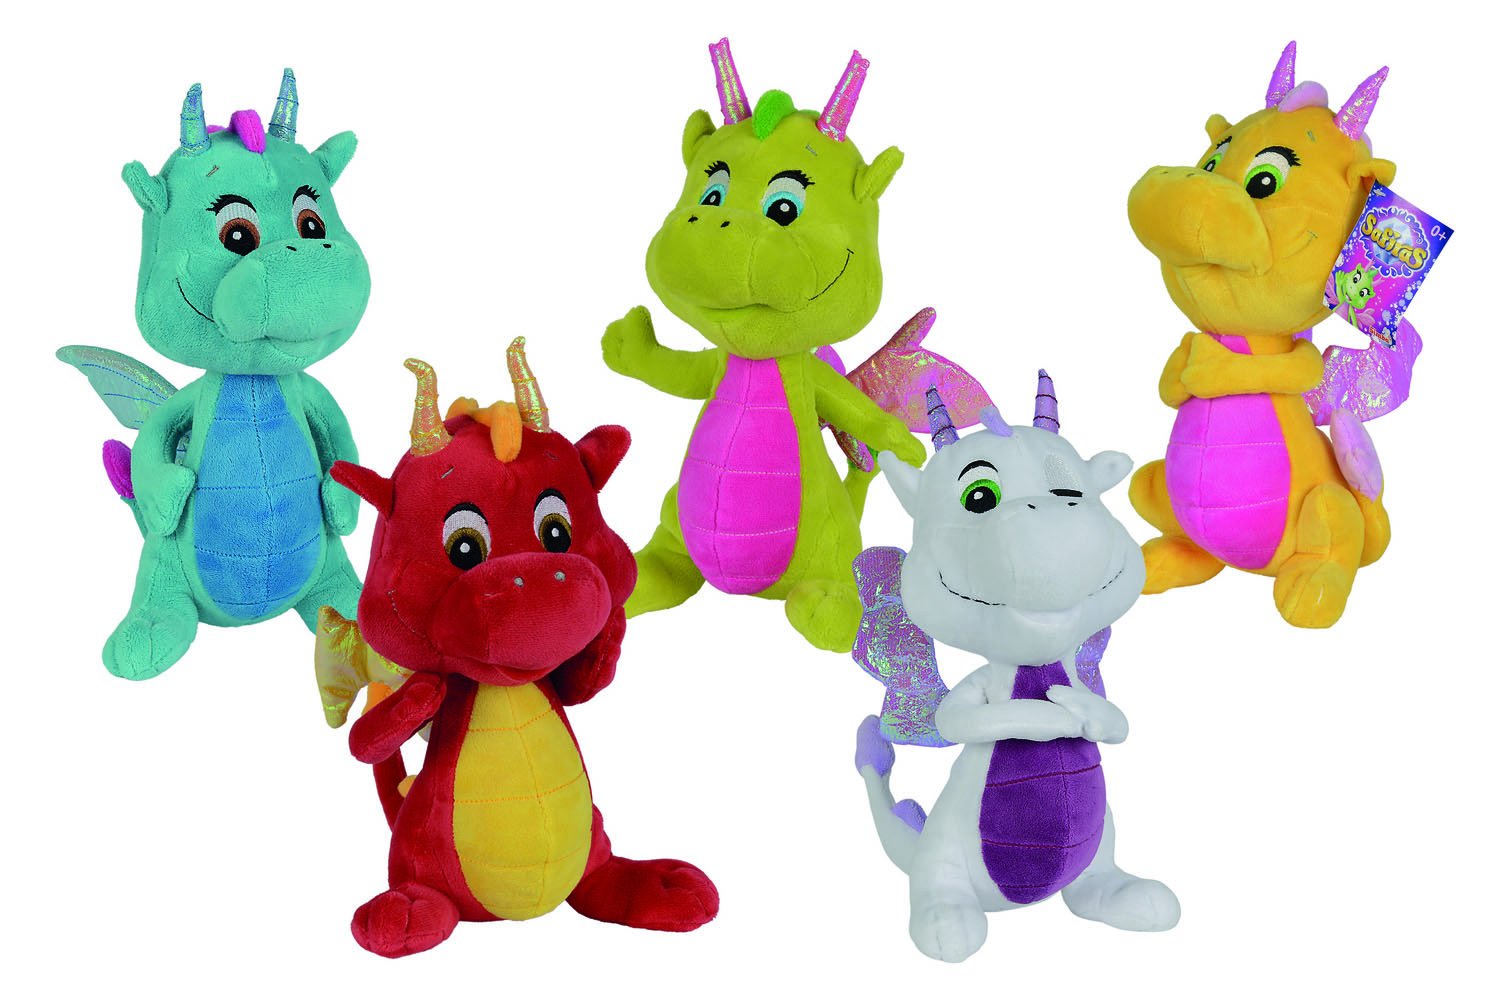 Safiras Plush Figures Dragons 25 cm Assortment (5)